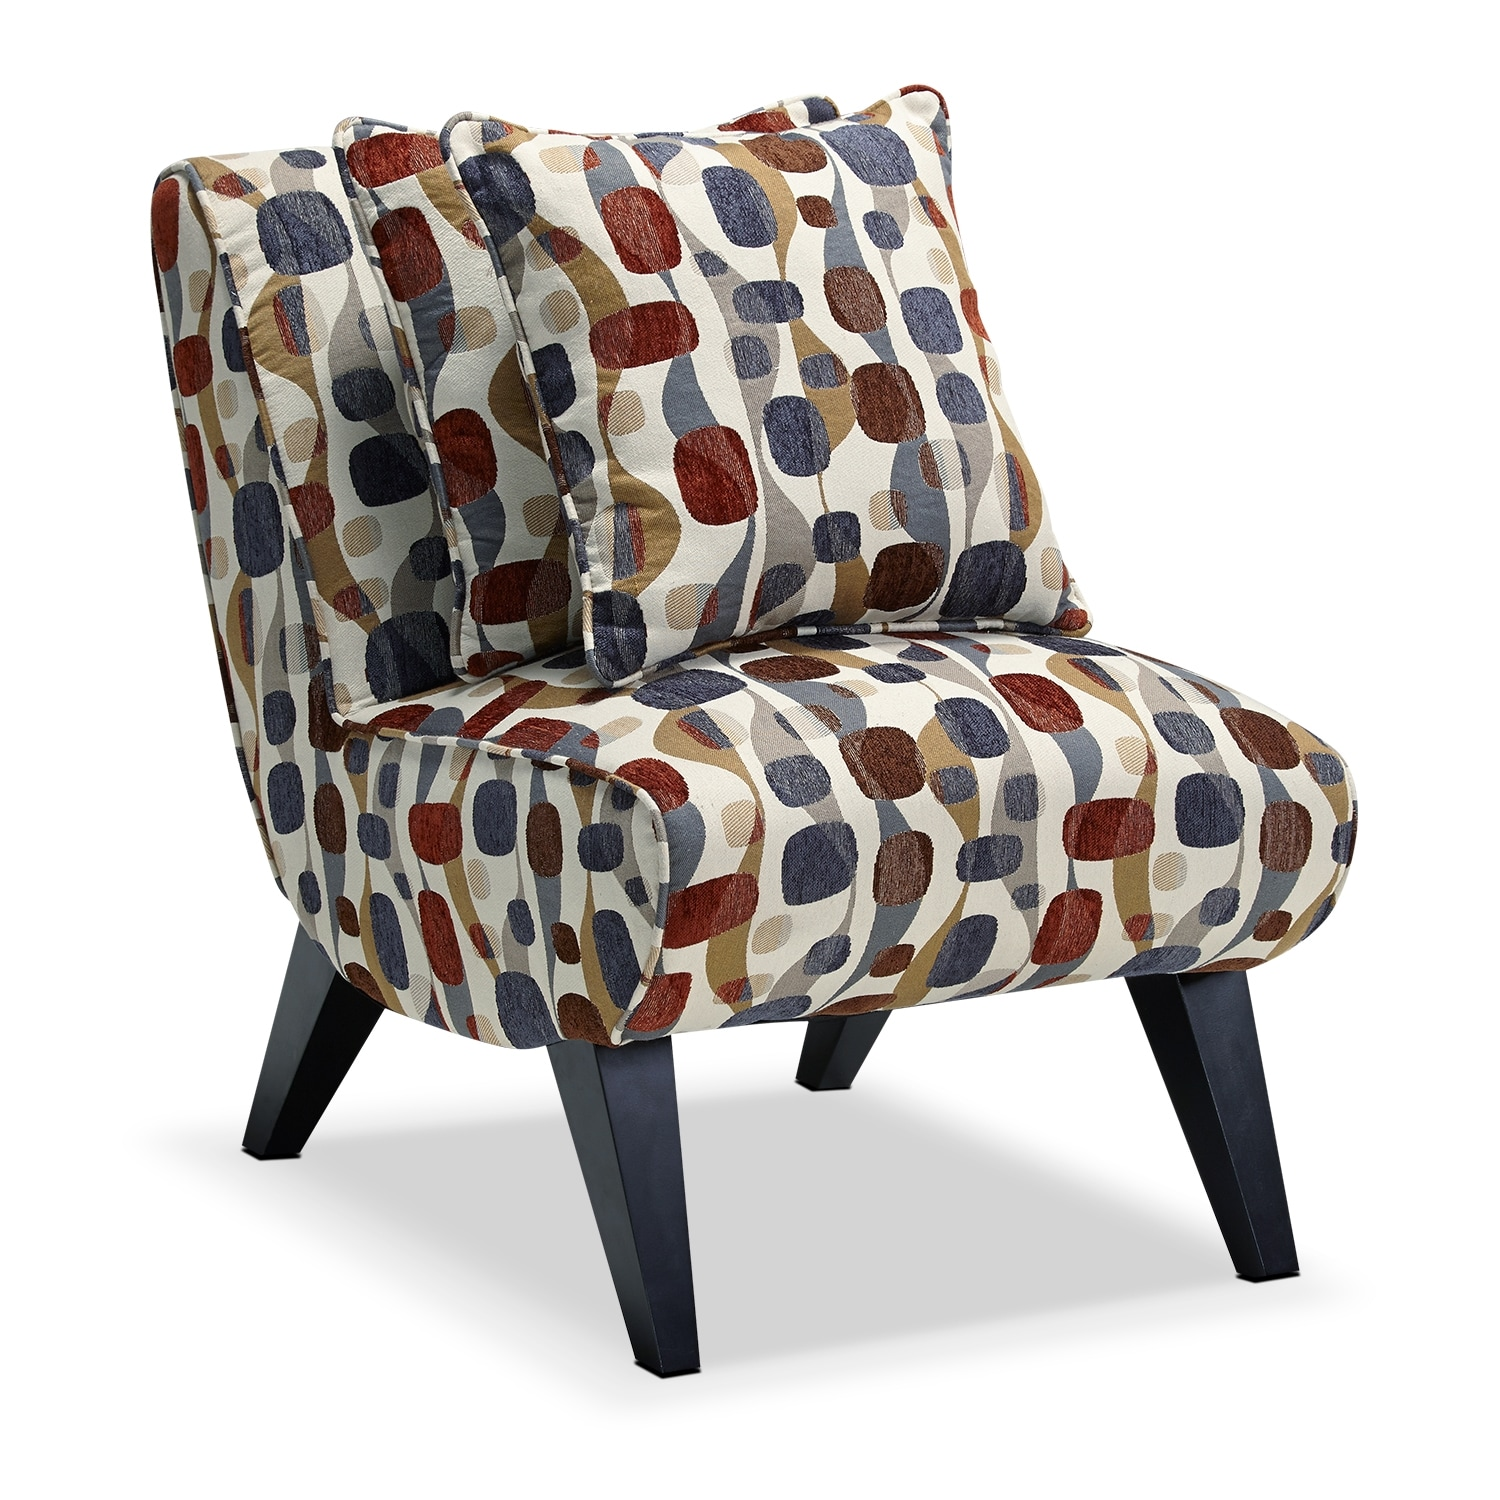 accent chairs under $200 | value city furniture and mattresses